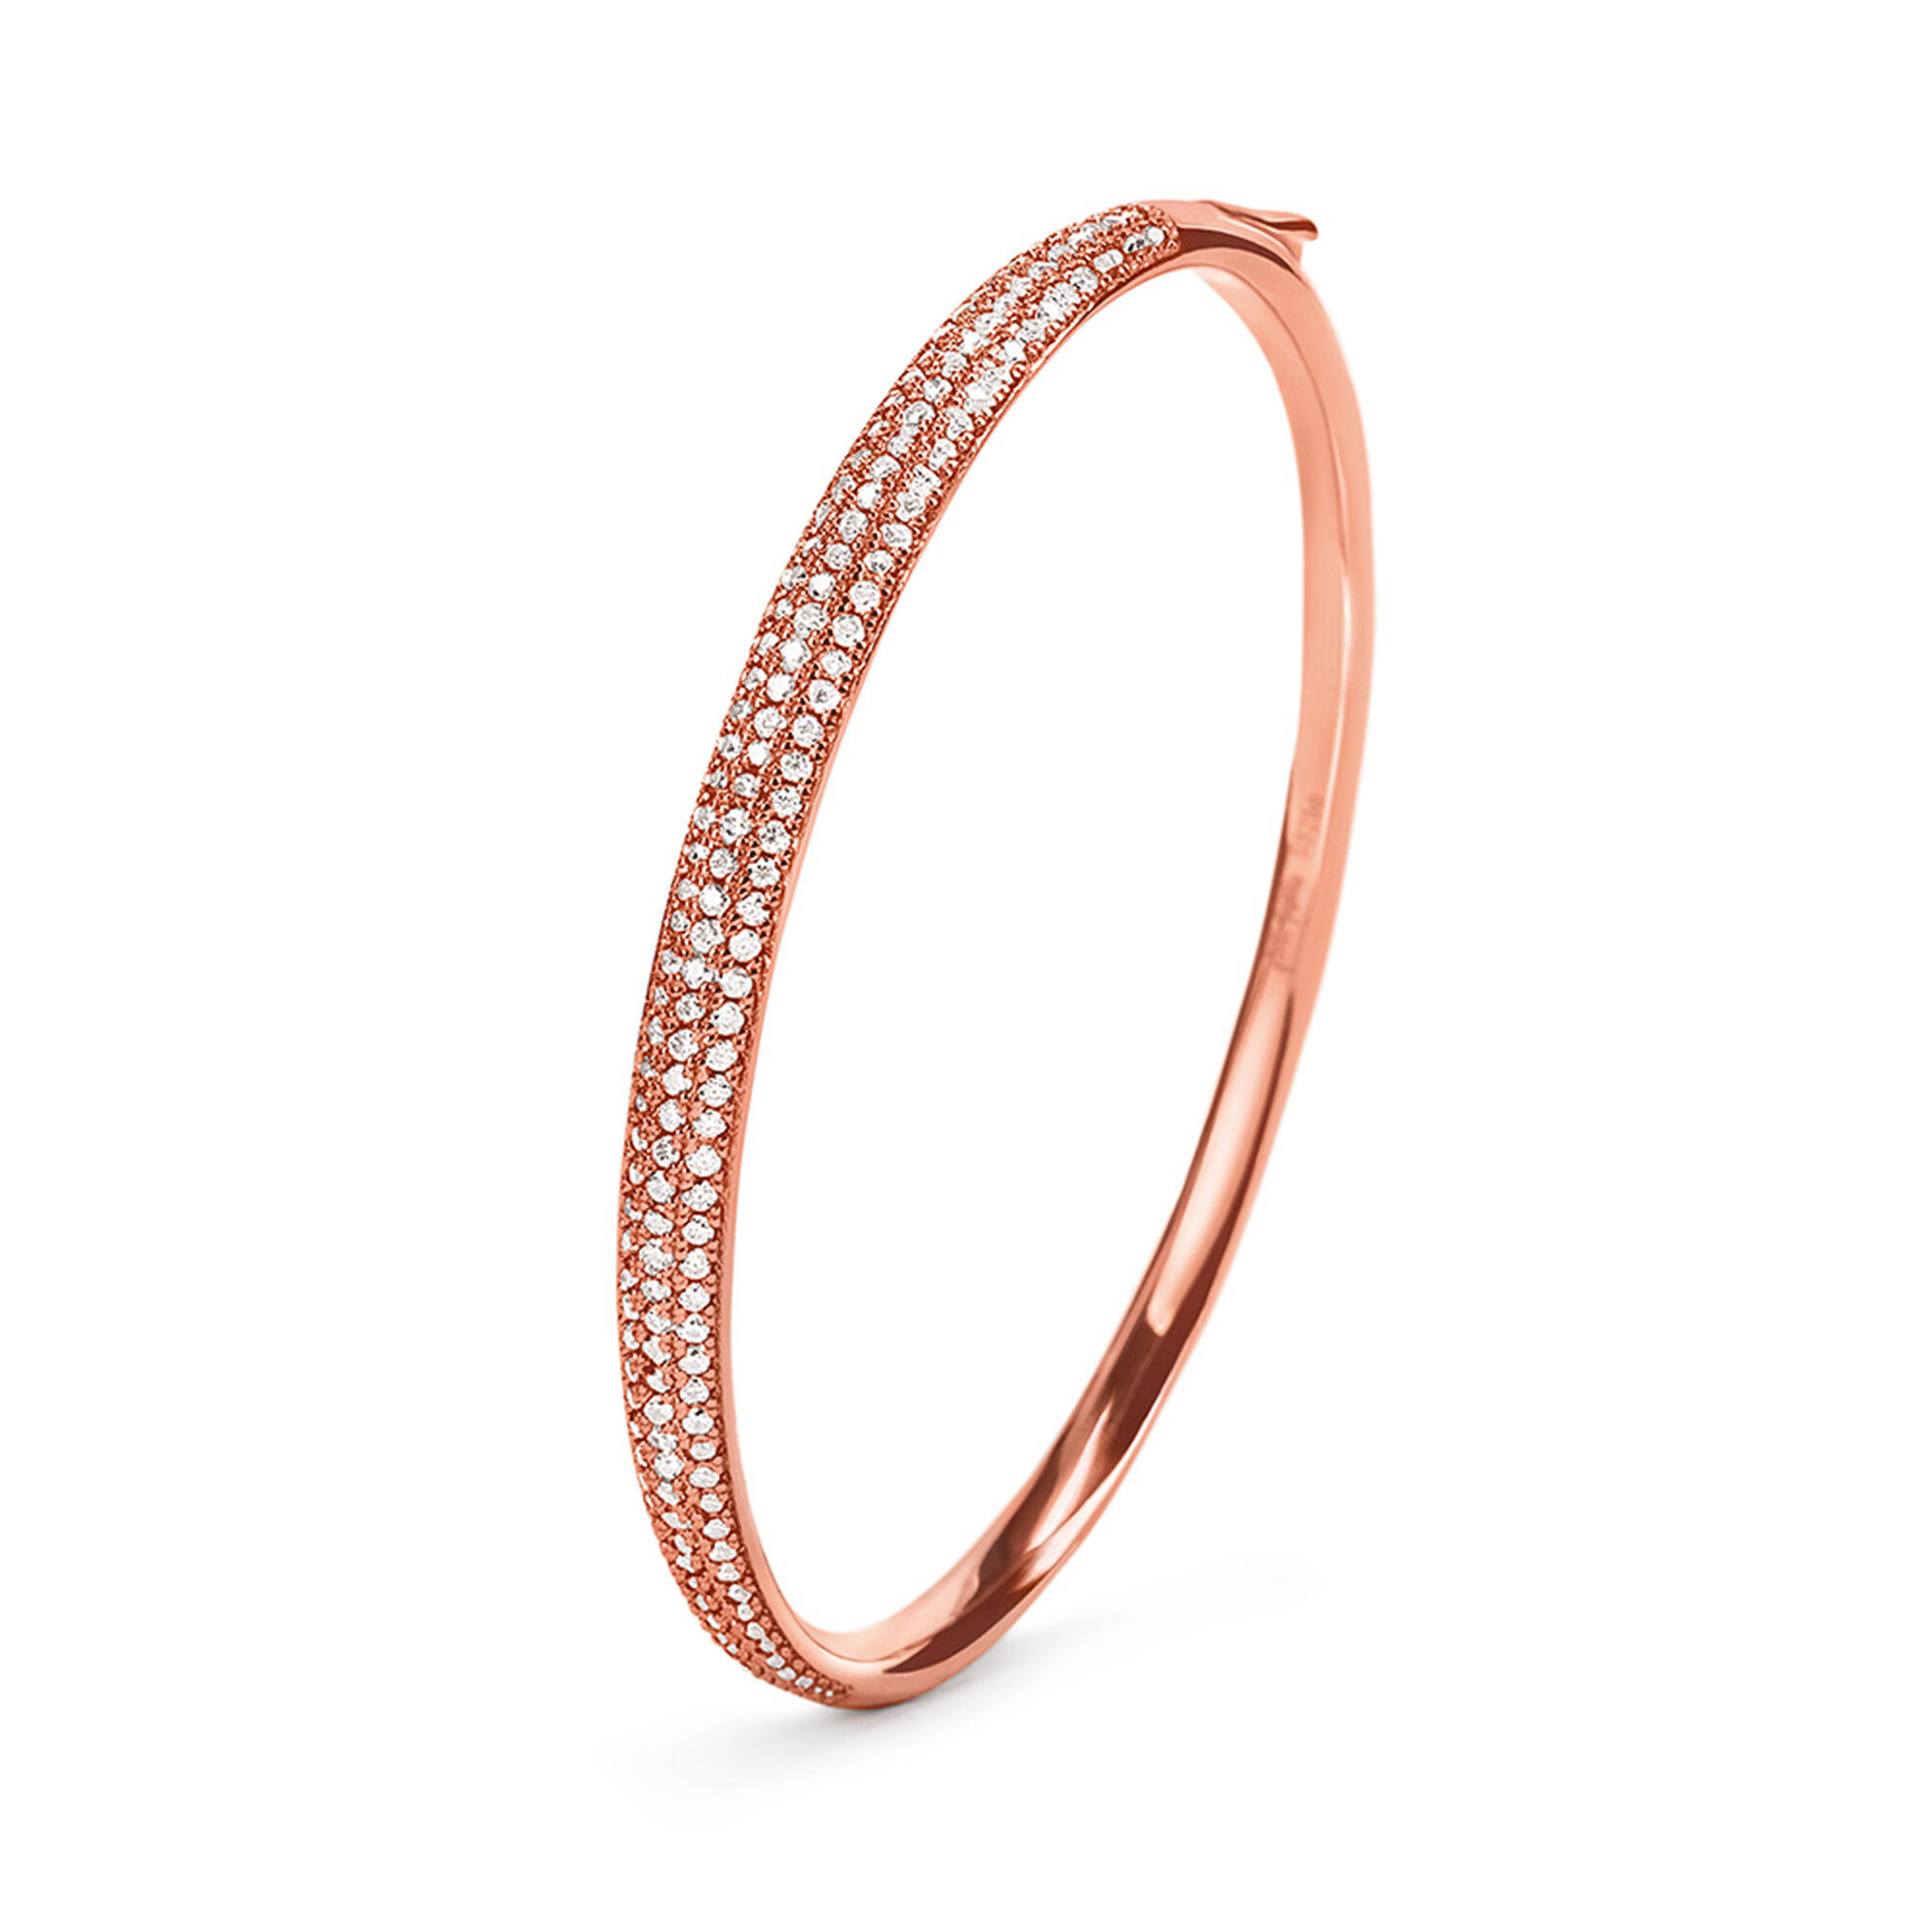 gold pave bangle white round bracelet products bangles clear crystals heart from rose ed plated swarovski with